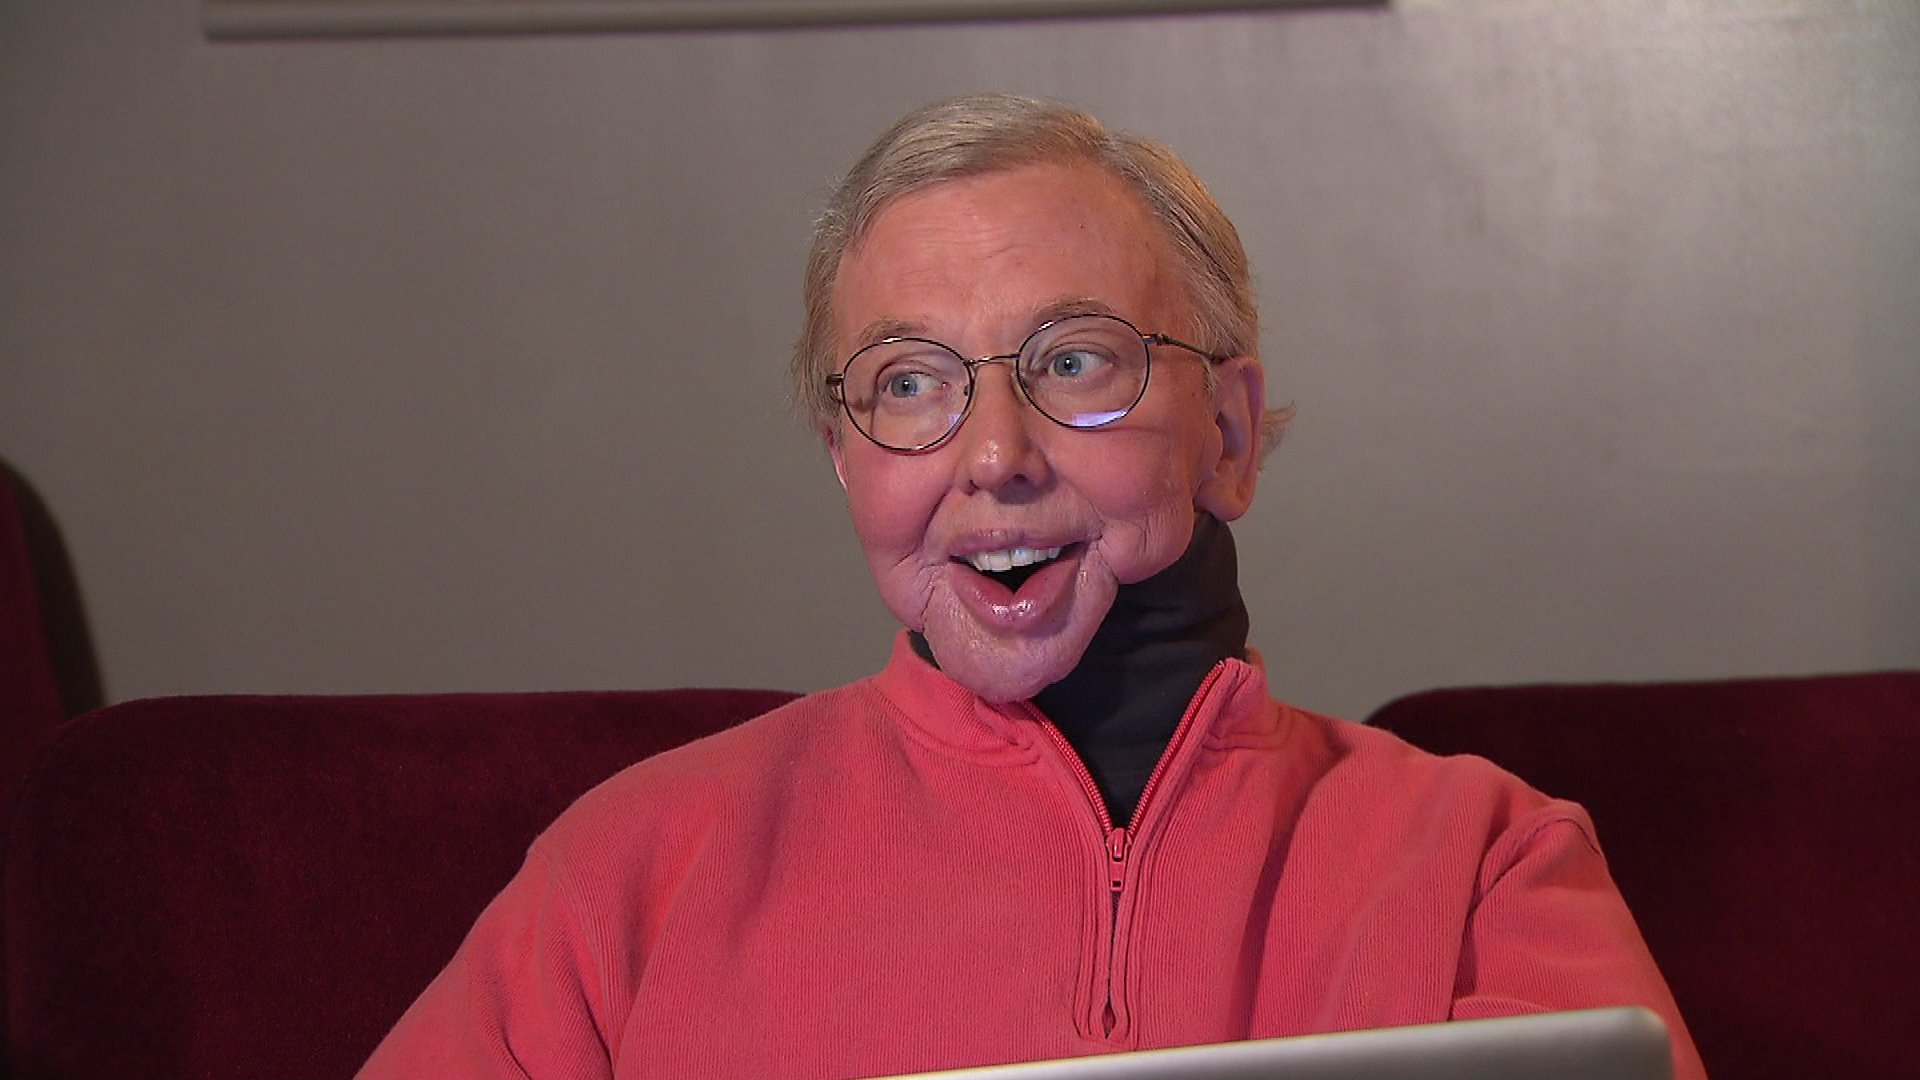 Roger Ebert's cancer has returned; says he will take 'leave of presence'